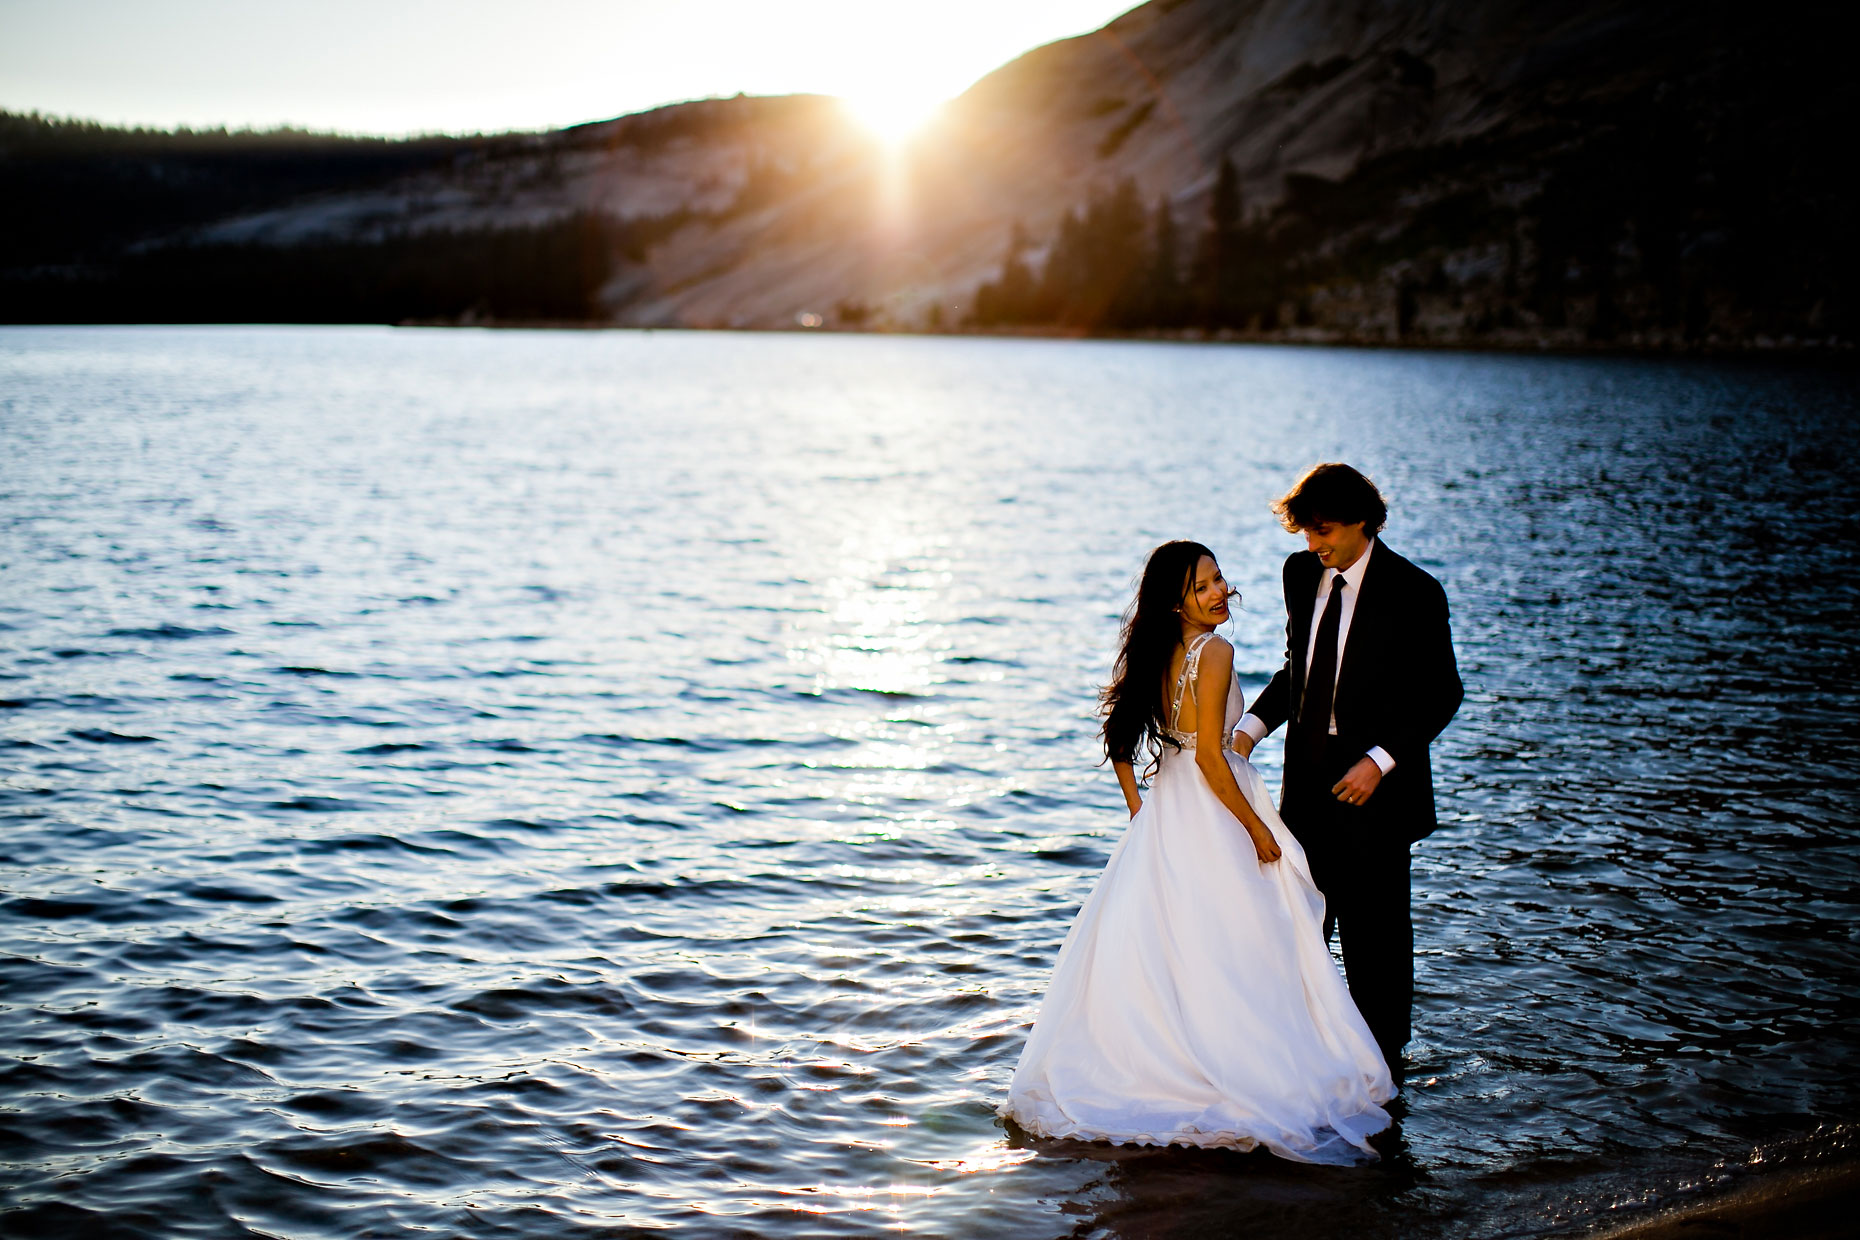 Bride & Groom in Tenaya Lake - Tuolumne, Yosemite.